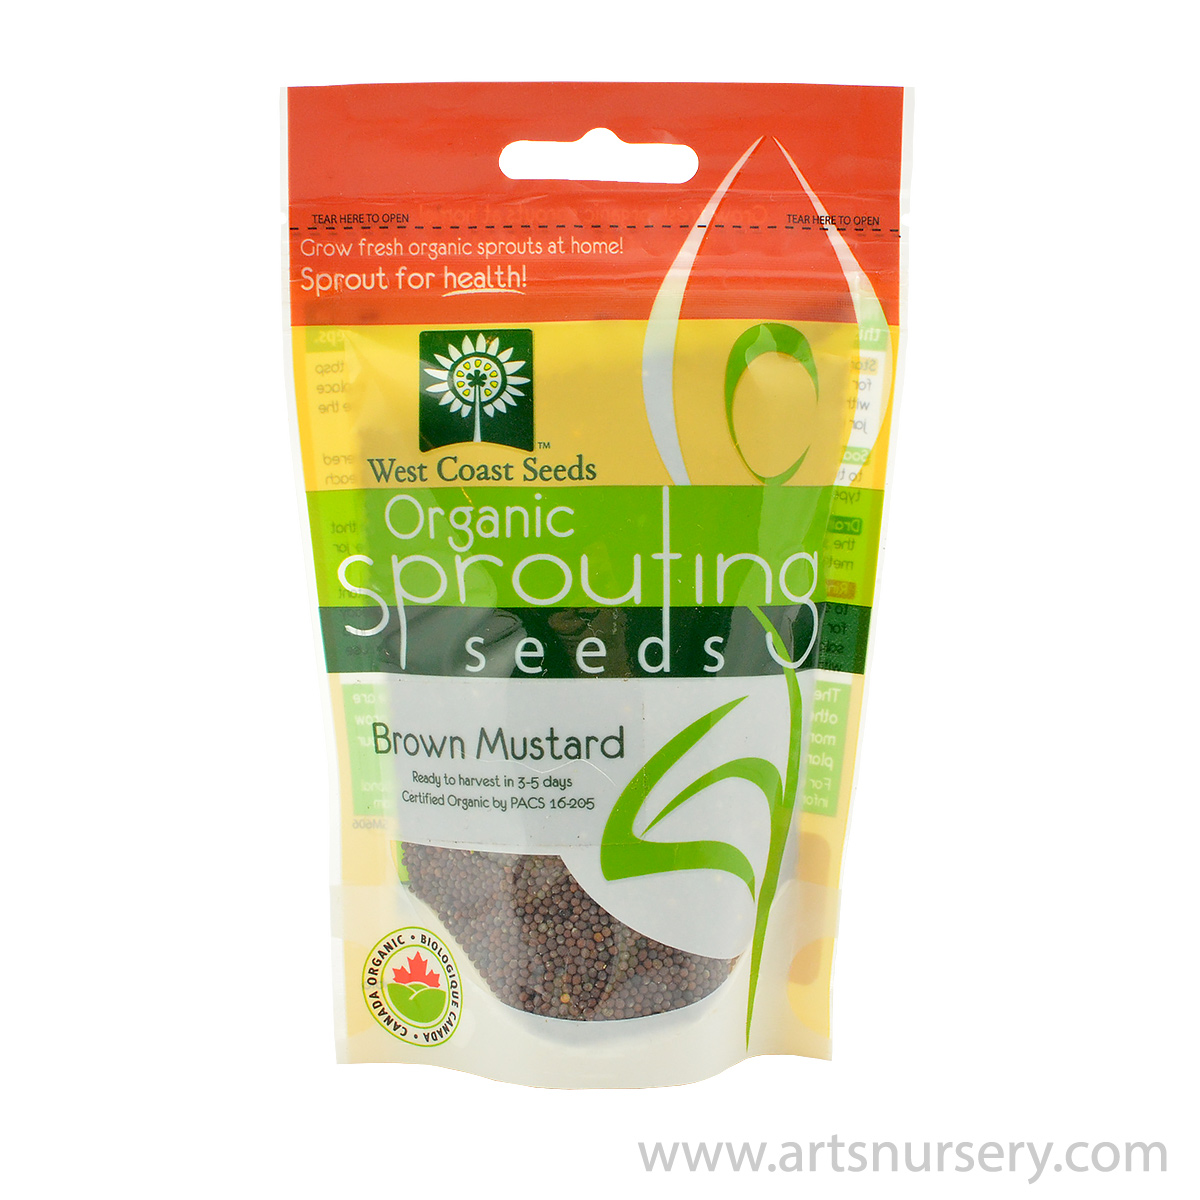 Brown Mustard Organic Sprouting Seeds